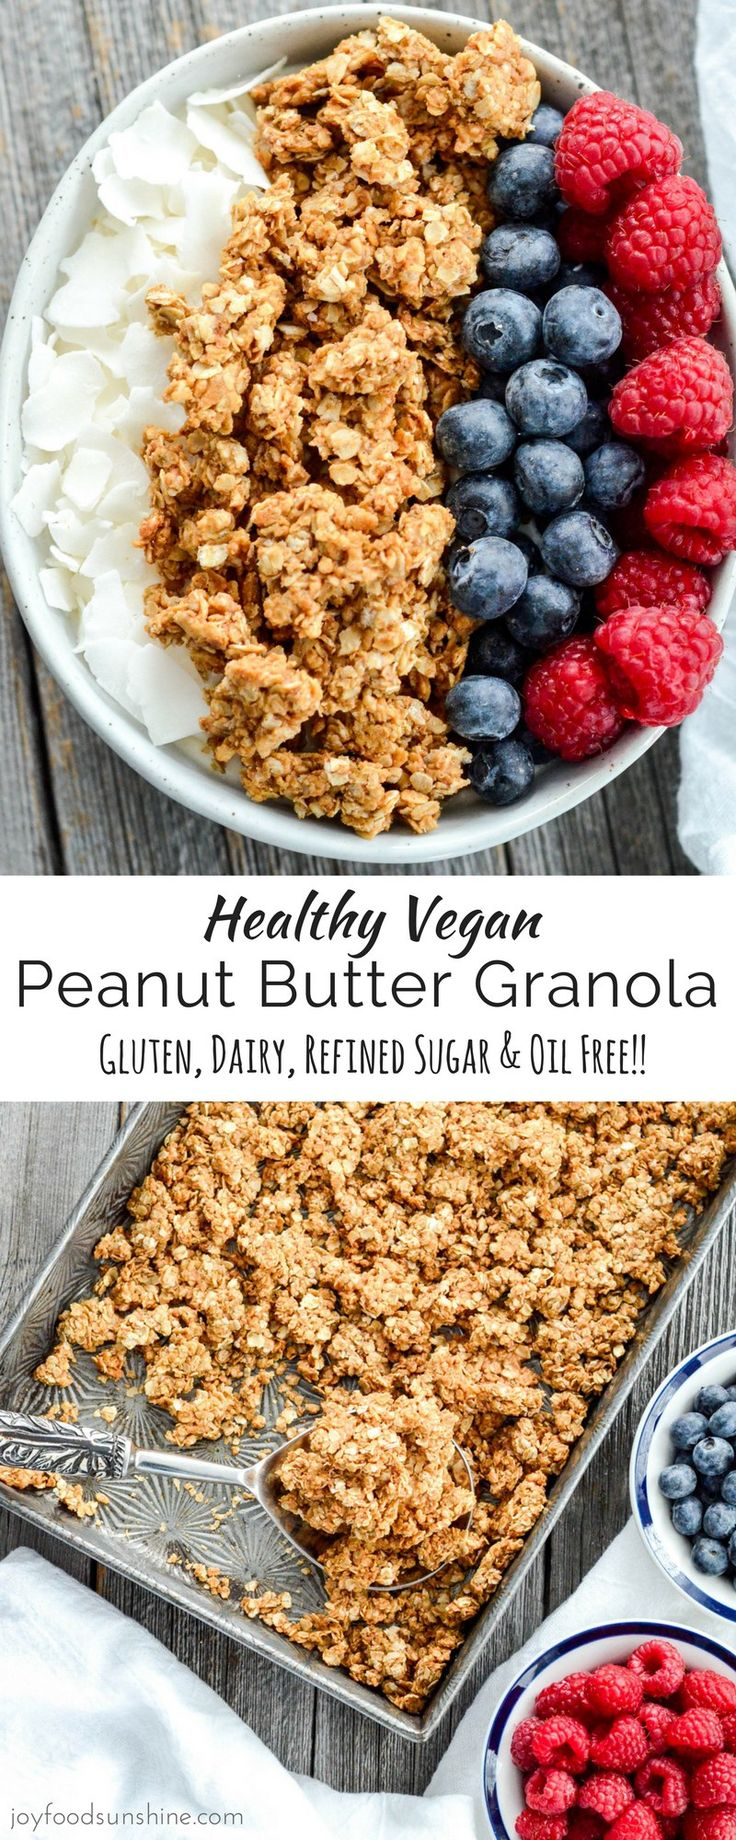 This Healthy Peanut Butter Granola is the perfect make-ahead breakfast recipe! With only 6 ingredients its so easy to make!